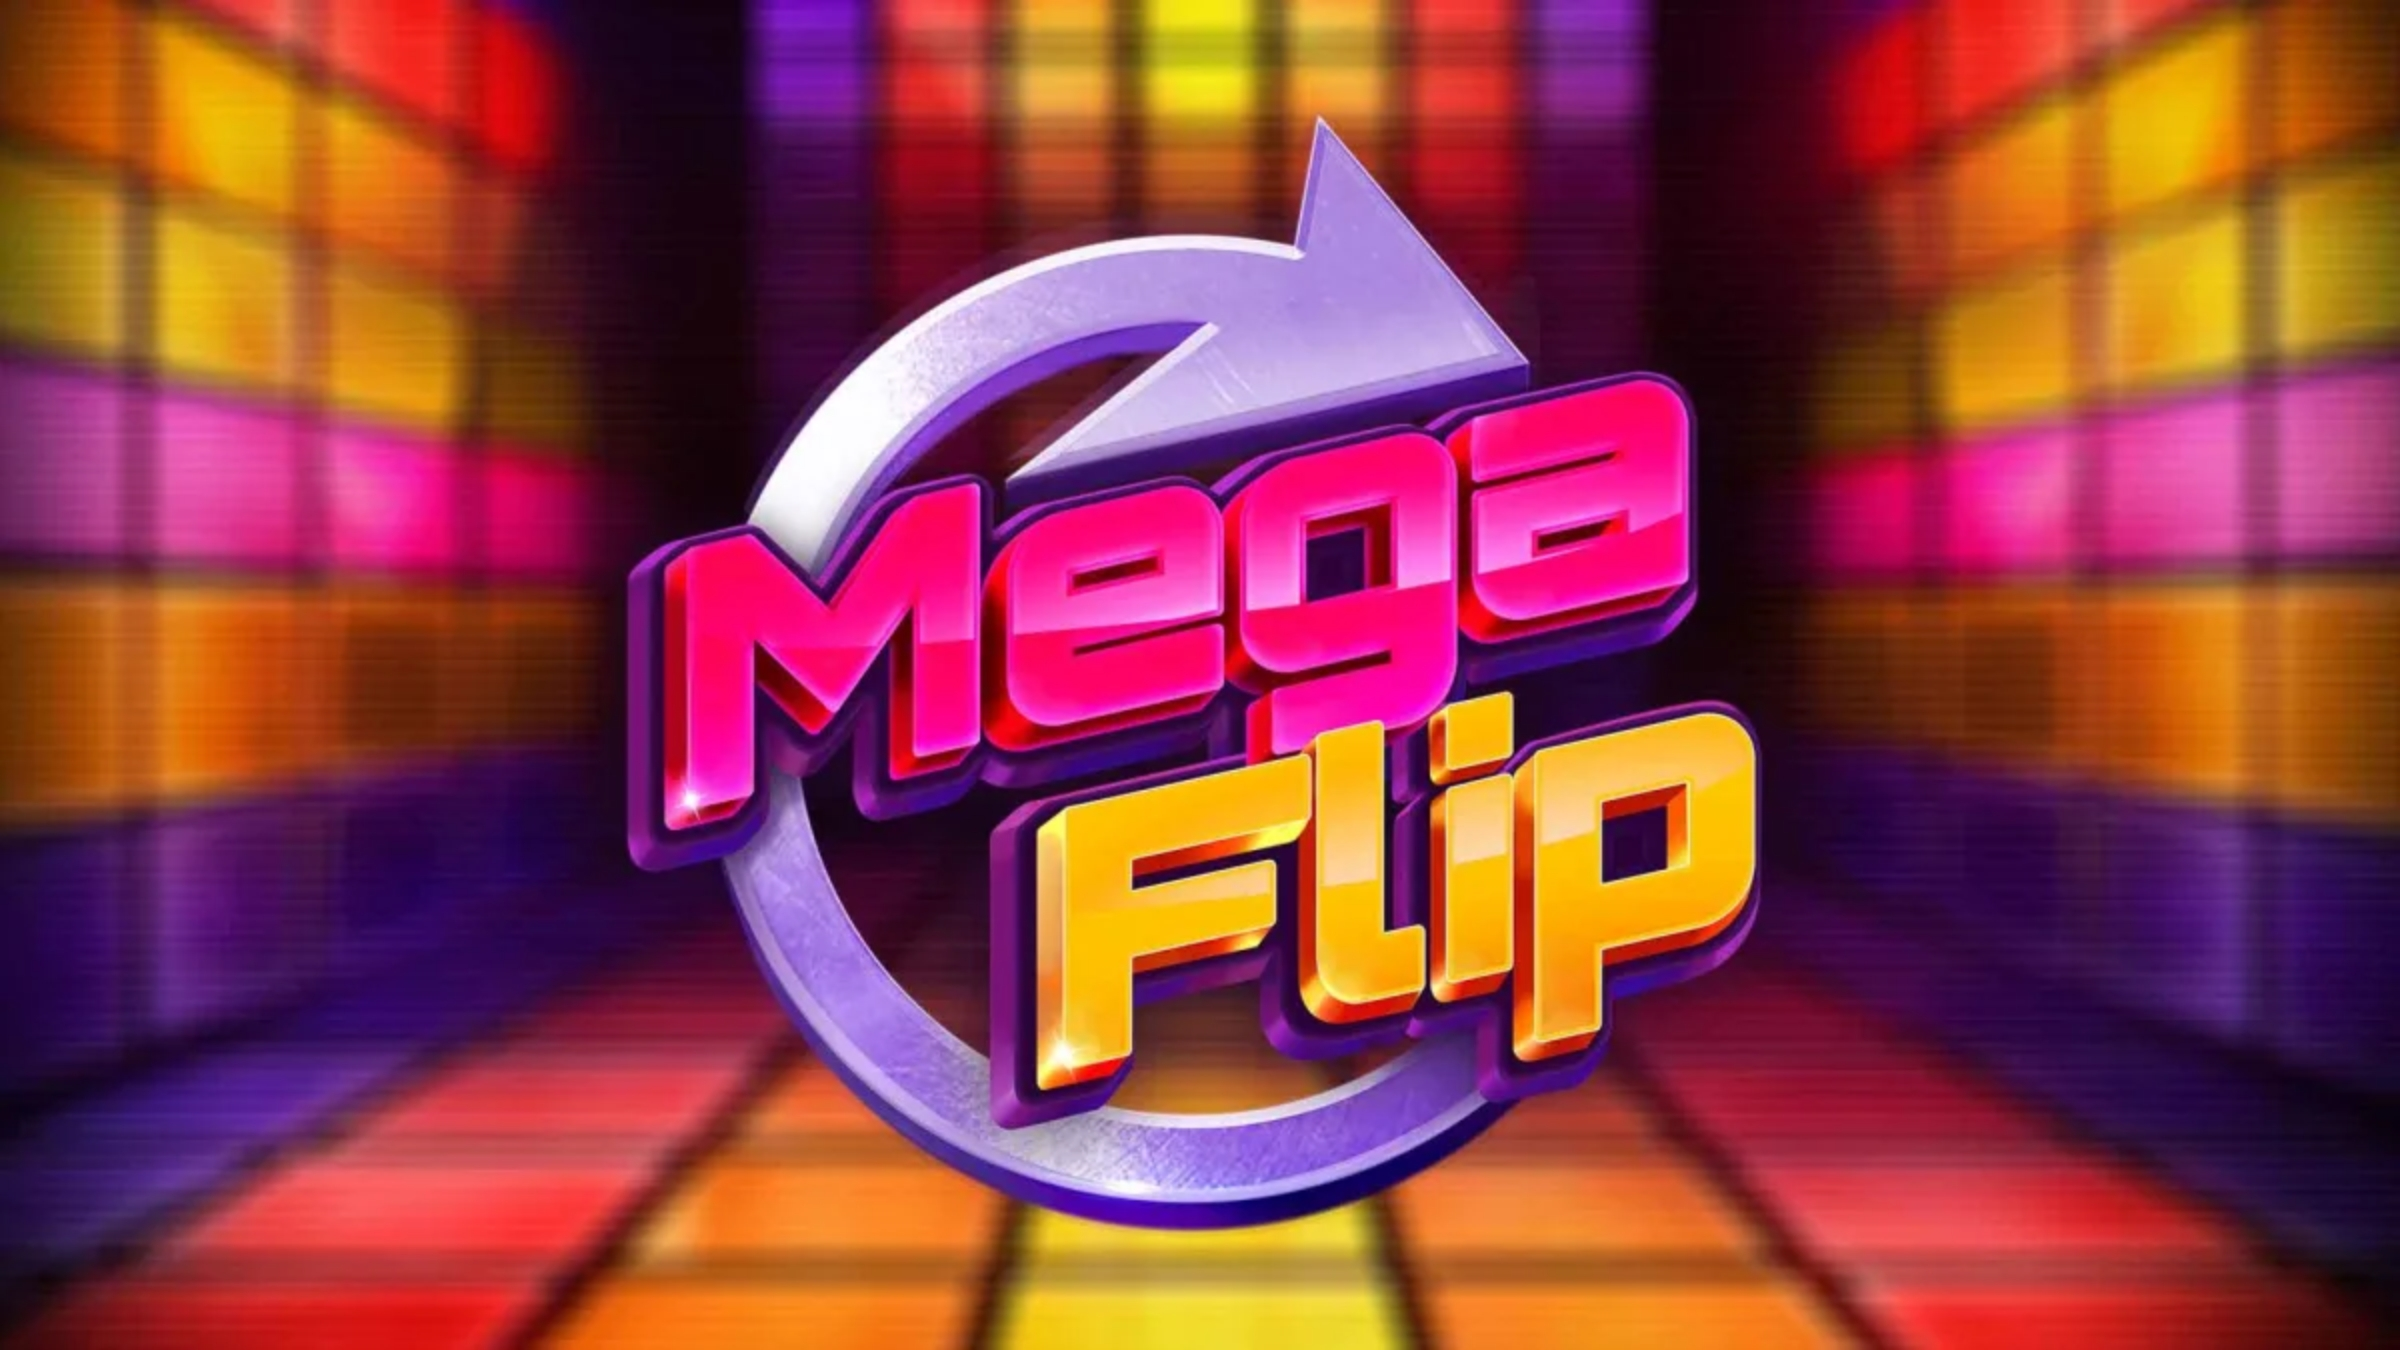 The Mega Flip Online Slot Demo Game by Relax Gaming